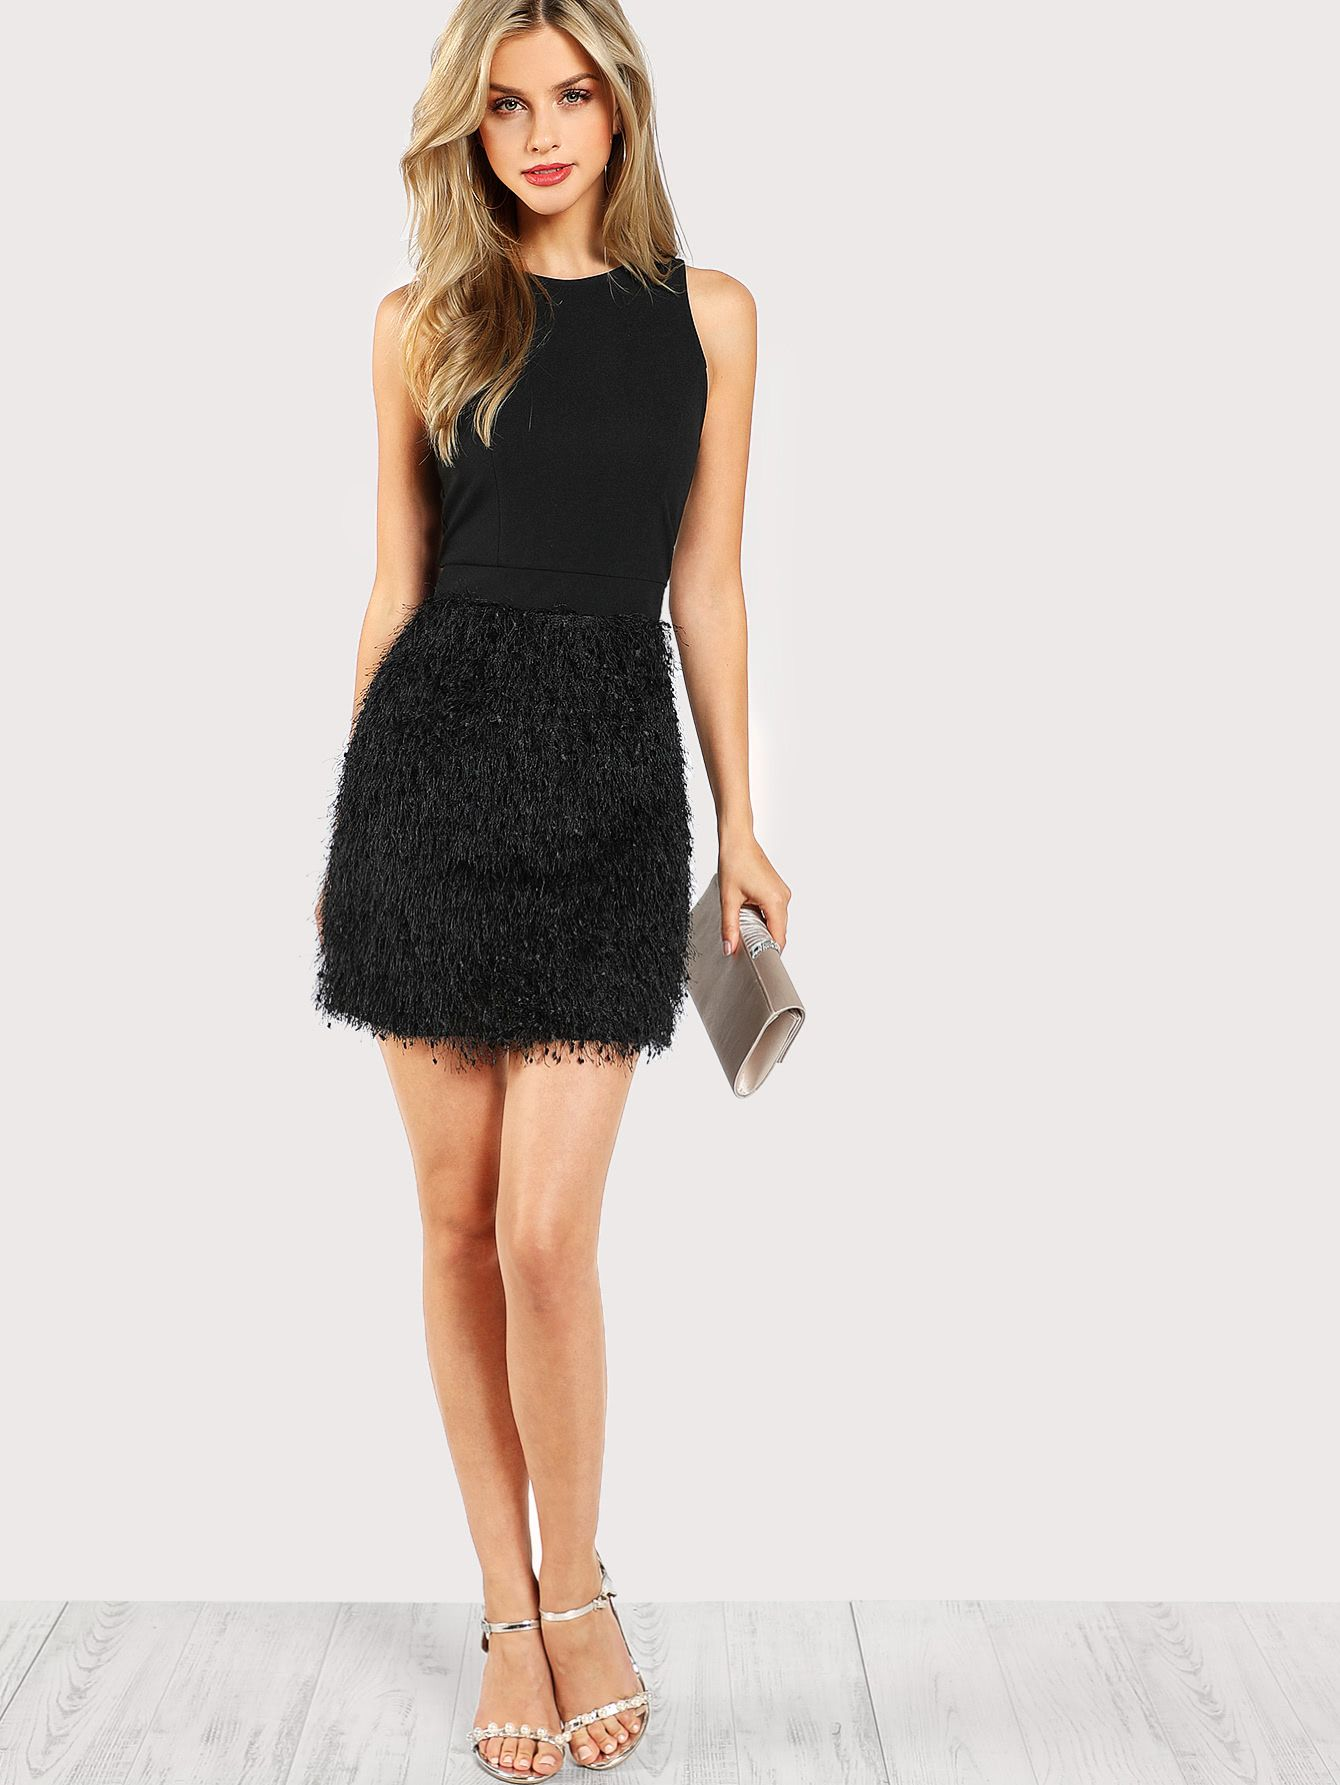 Faux Feather Bottom Dress Shein Sheinside Dresses Embellished Cocktail Dress Party Dresses For Women